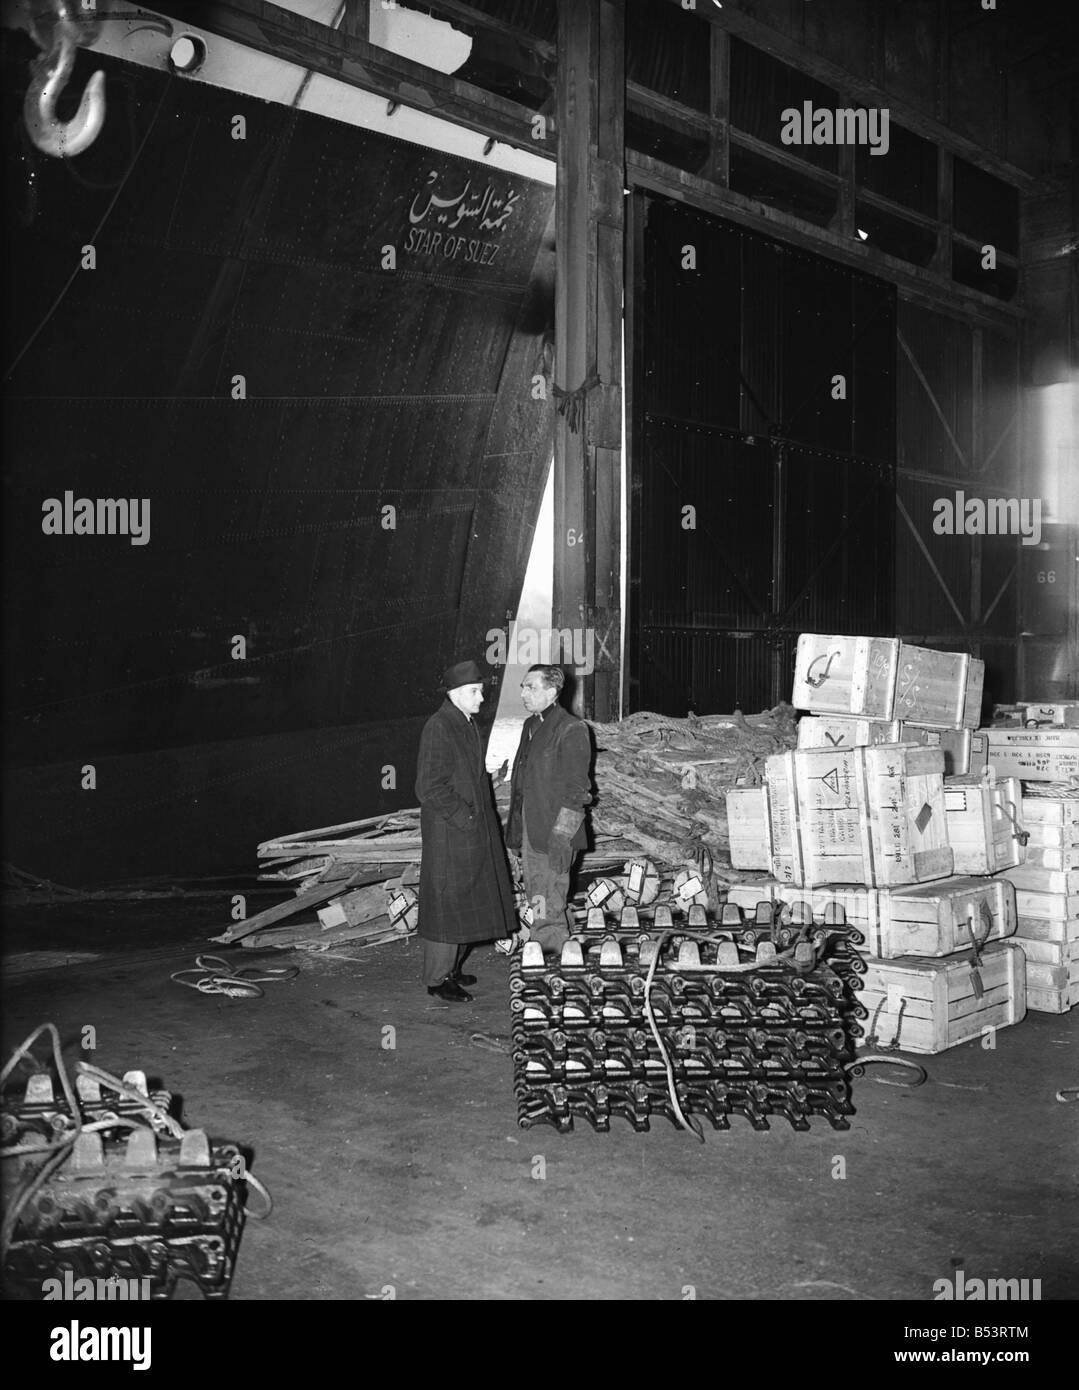 Suez Crisis 1956 British arms waiting to be shipped to Egypt for the Egyptian Army on the ship Star of Suez at Alexander - Stock Image